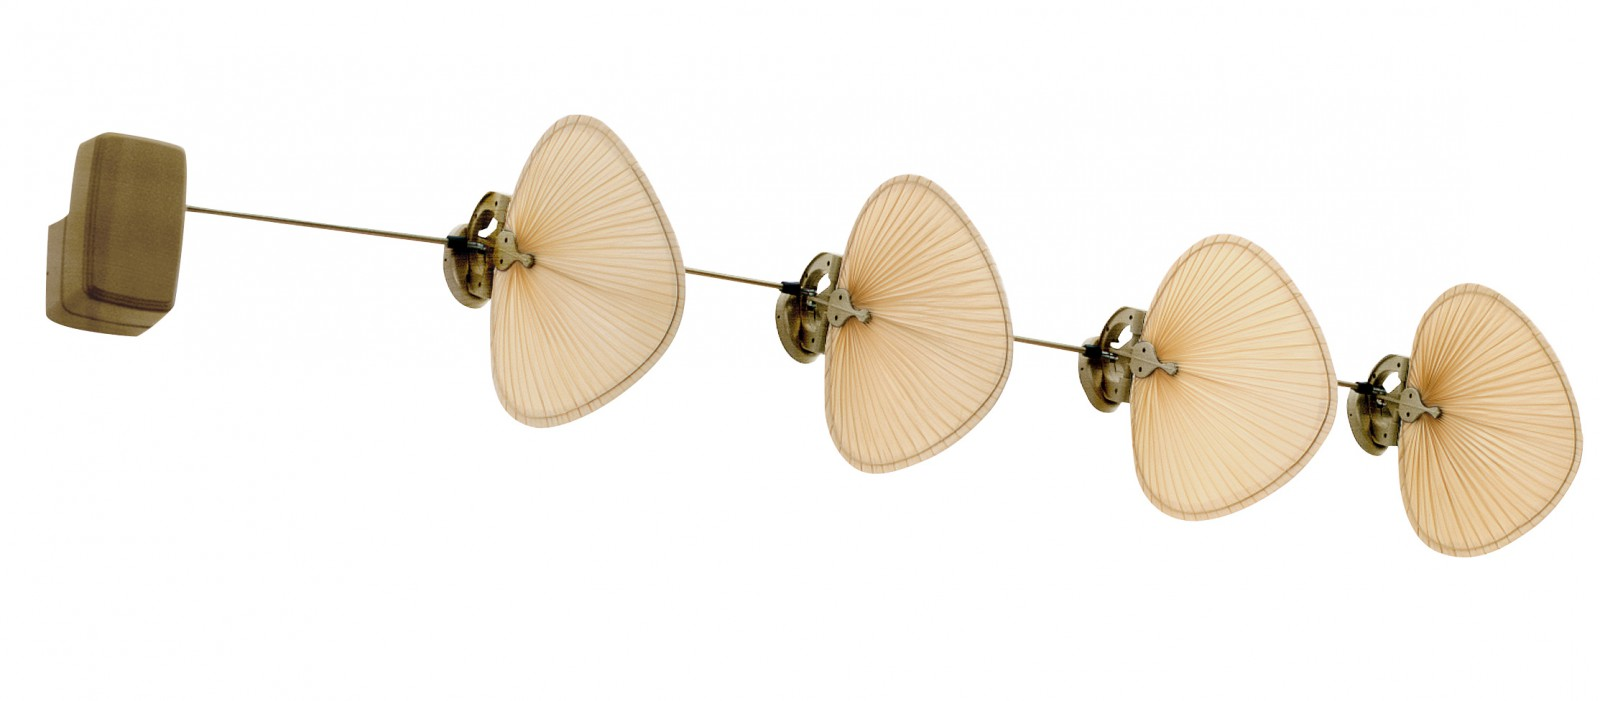 The Punkah Fan Brass Antique Wide Oval Palm Short